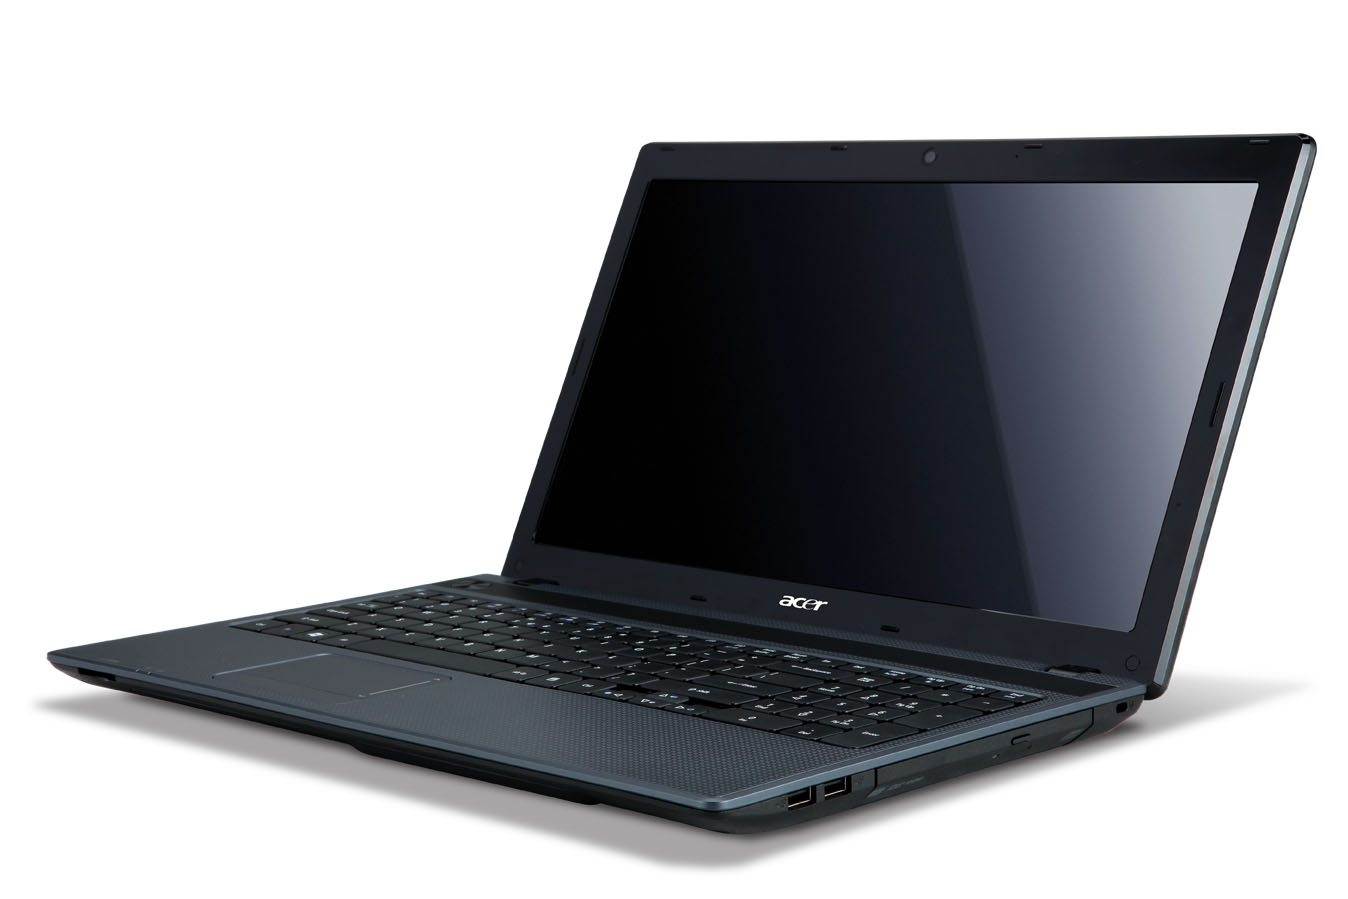 ACER SW7-272P SYNAPTICS TOUCHPAD WINDOWS 8 DRIVER DOWNLOAD